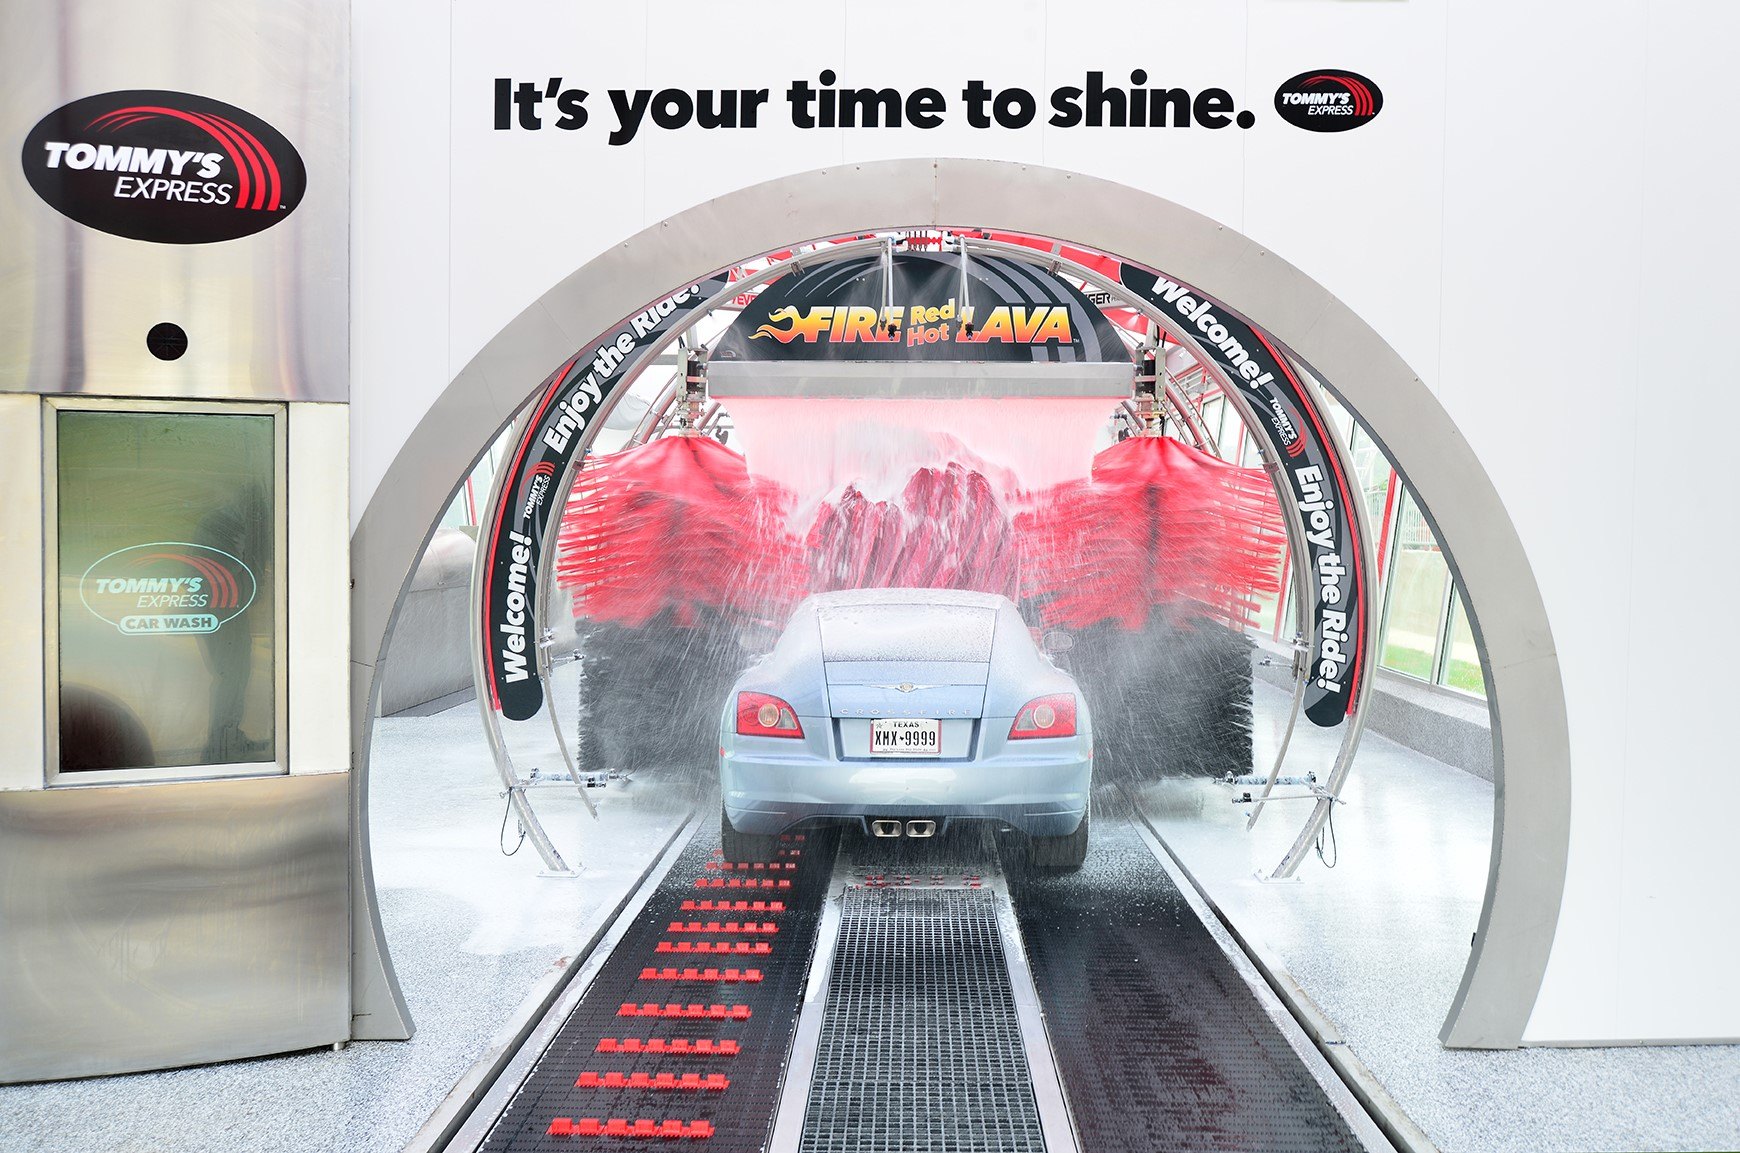 Supplier News Leed Certified Tommy S Express Car Wash Opens In San